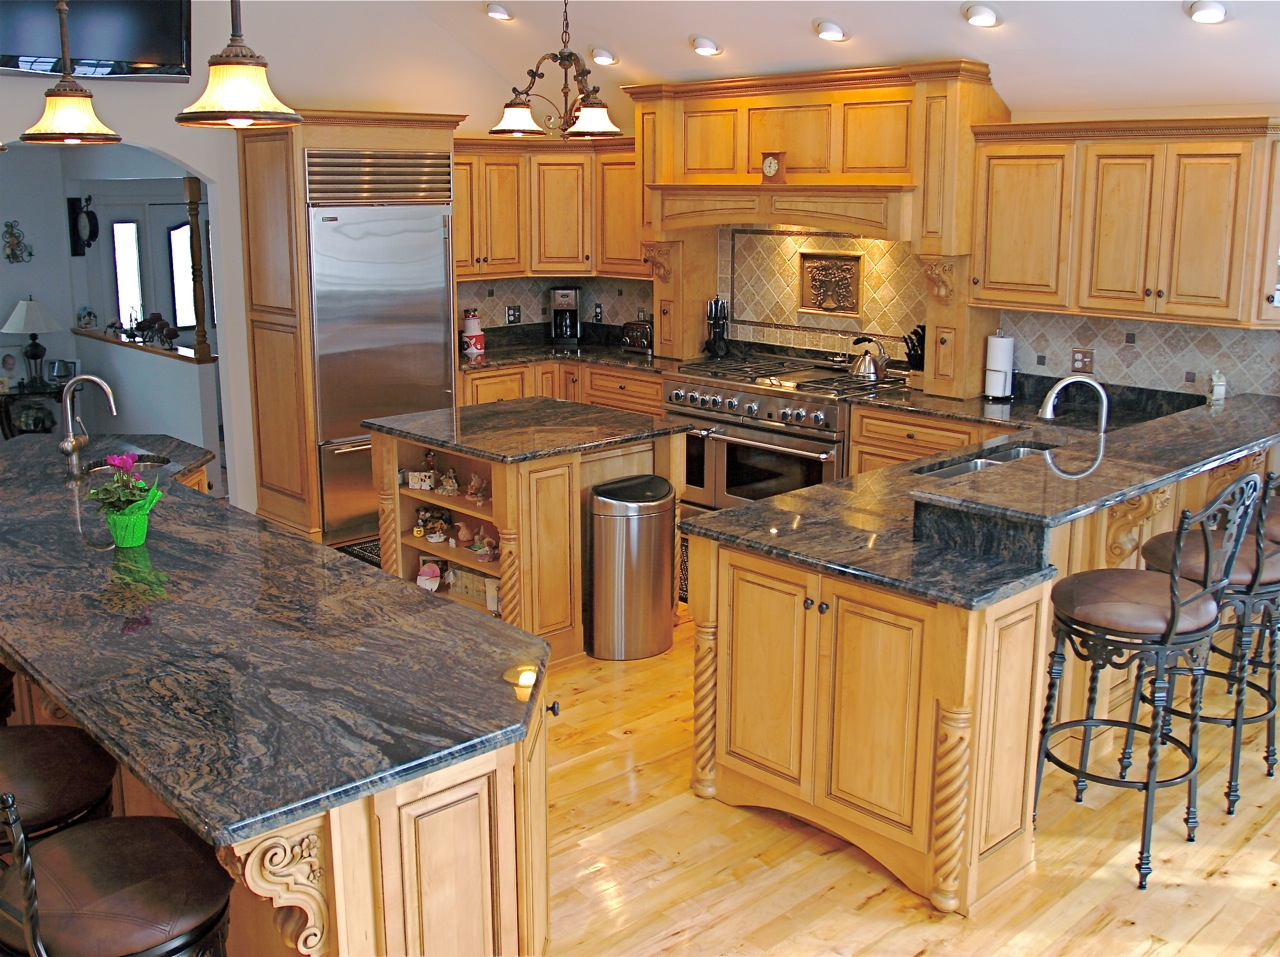 white kitchen granite images rock countertop stunning cabinets quartz countertops best for with